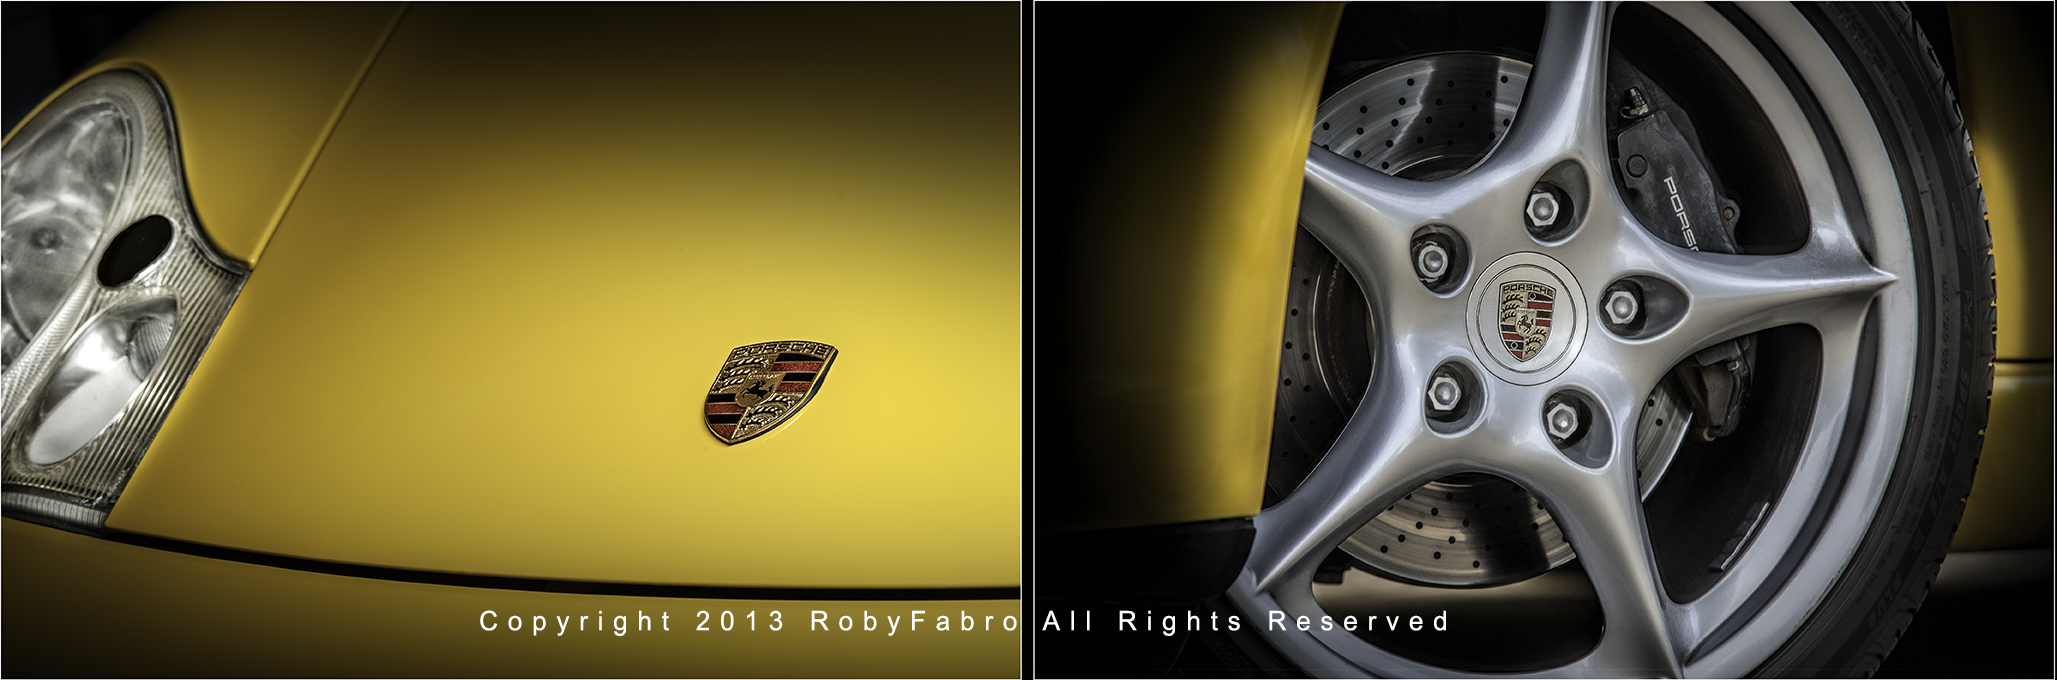 Porsche-Carrera-Front-Logo-and-spokes. Boston automotive photographer | RobyFabro